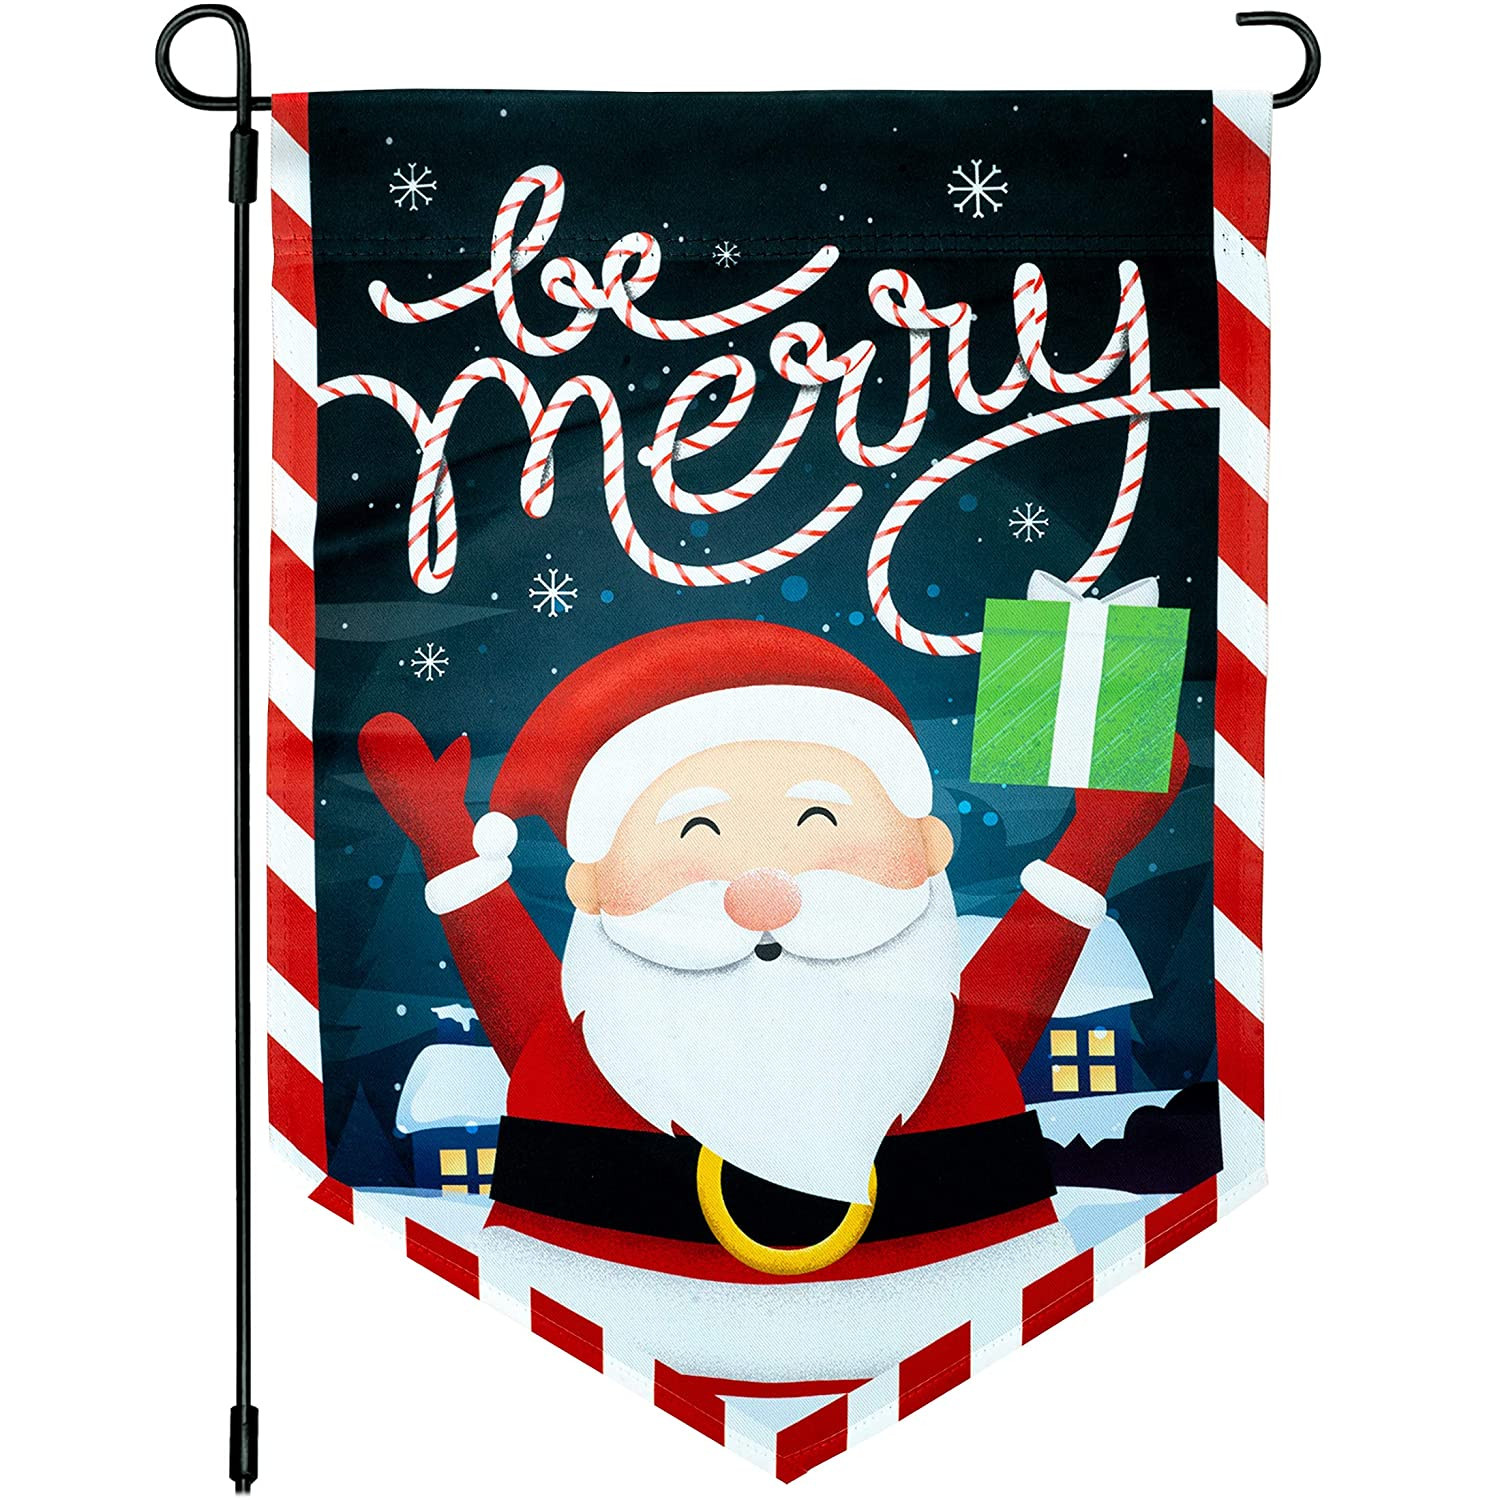 Joyousa Christmas Garden Flag - 12x18 Christmas Flag Outdoor - Weather Resistant - Artist Rendered Xmas Christmas Garden Flags Double Sided - Winter Yard Decorations Holiday Banners Outdoor